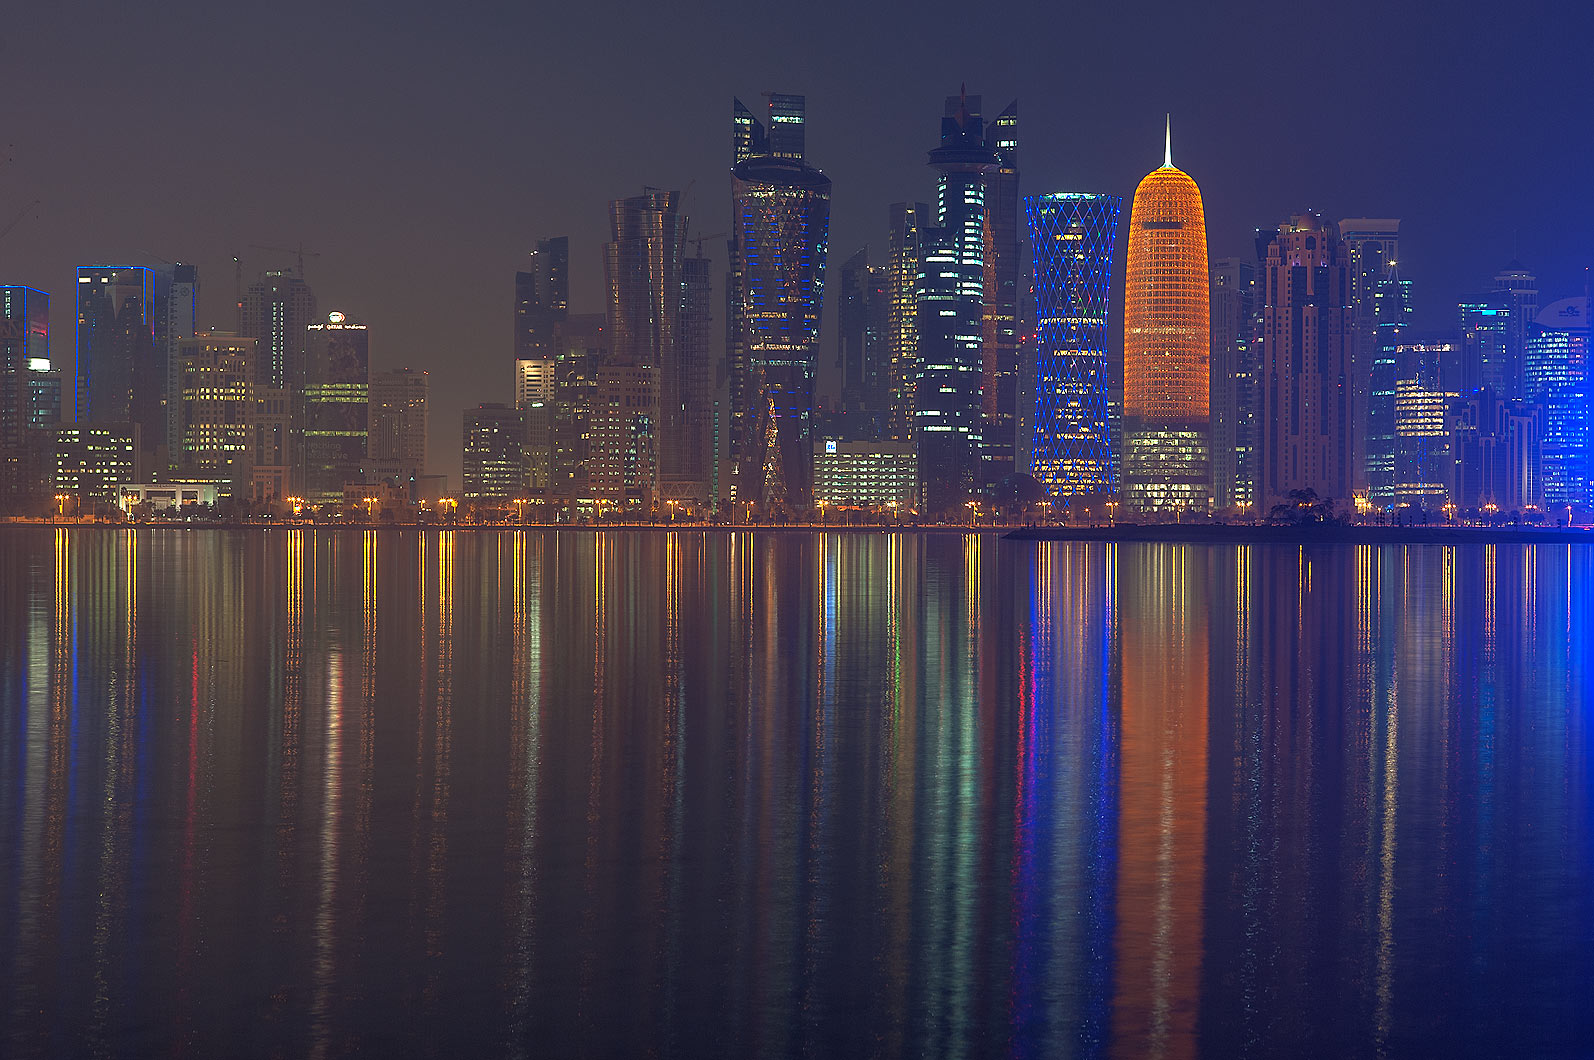 Reflections of lights of West Bay towers from Corniche promenade at dusk. Doha, Qatar